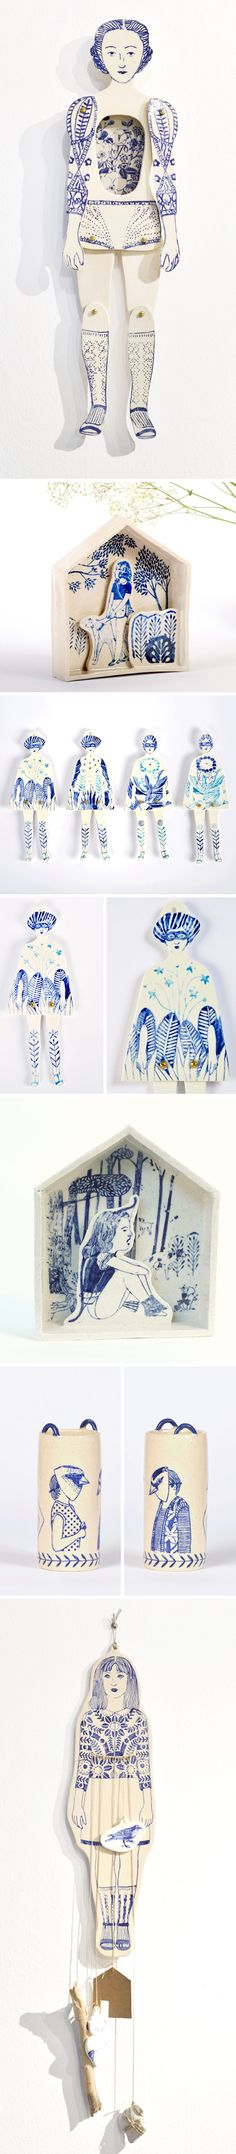 A paper doll… made from porcelain. This is the work of Barcelona based artist/illustrator Sonia Pulido. All of her work, but especially the ceramic pieces, are so whimsical, feminine,